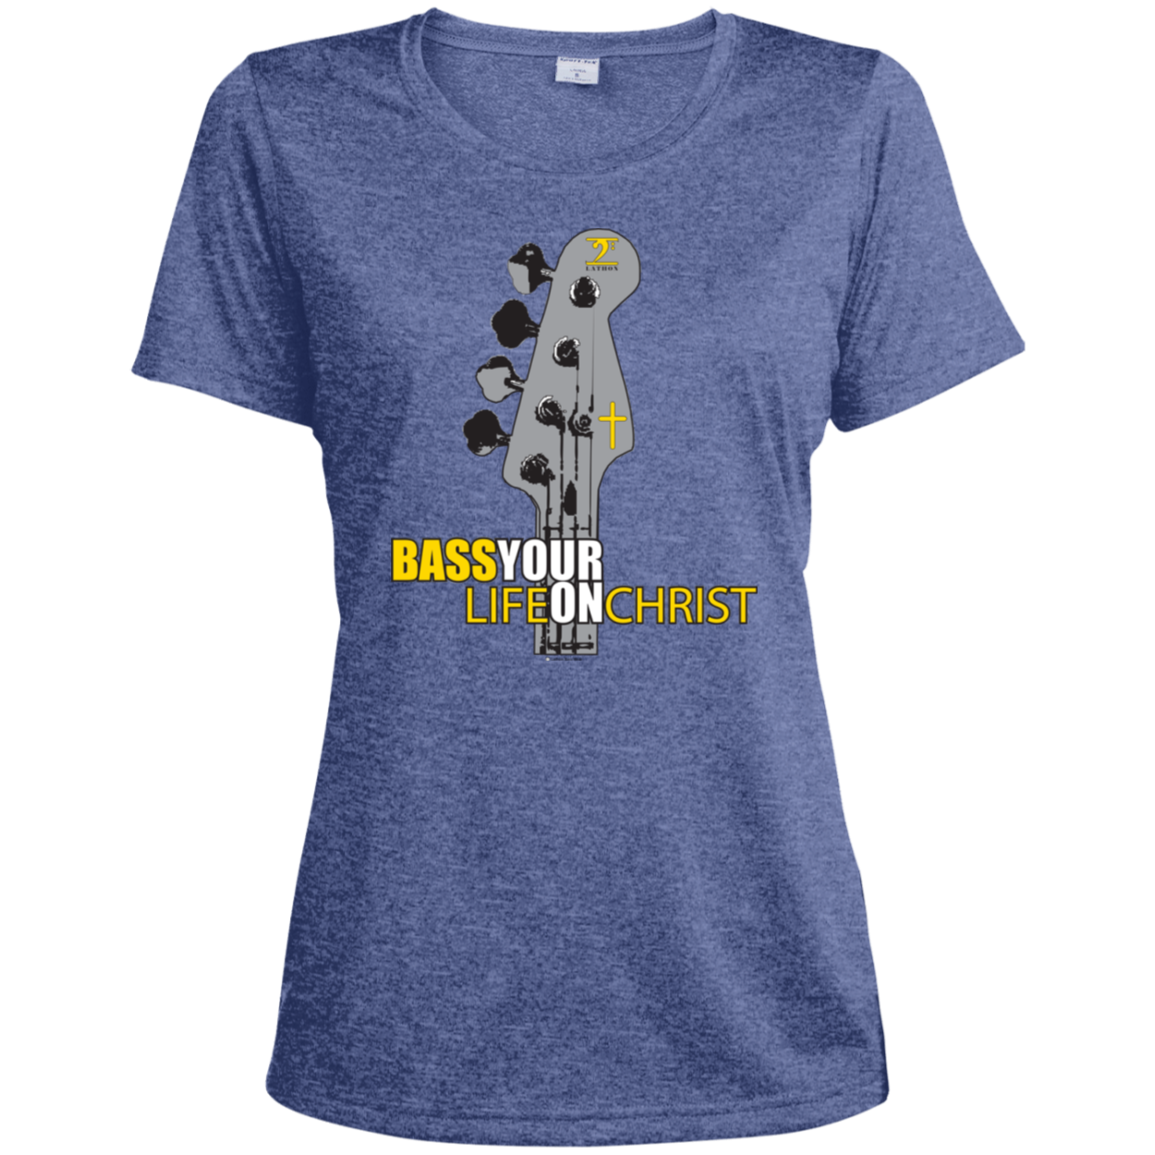 BASS YOUR LIFE ON CHRIST Ladies' Heather Dri-Fit Moisture-Wicking T-Shirt - Lathon Bass Wear